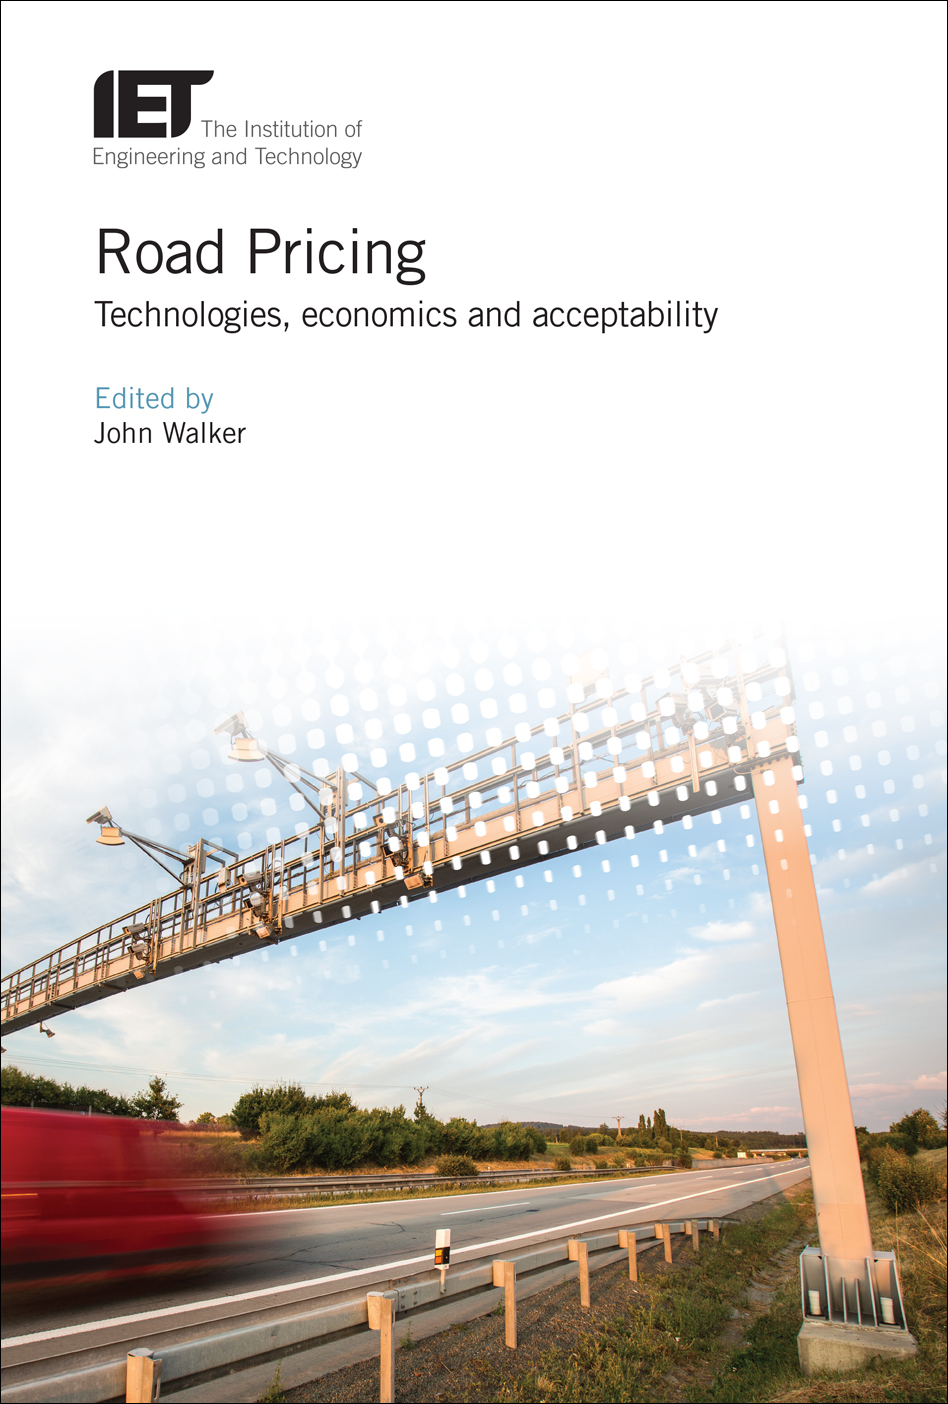 Road Pricing, Technologies, economics and acceptability